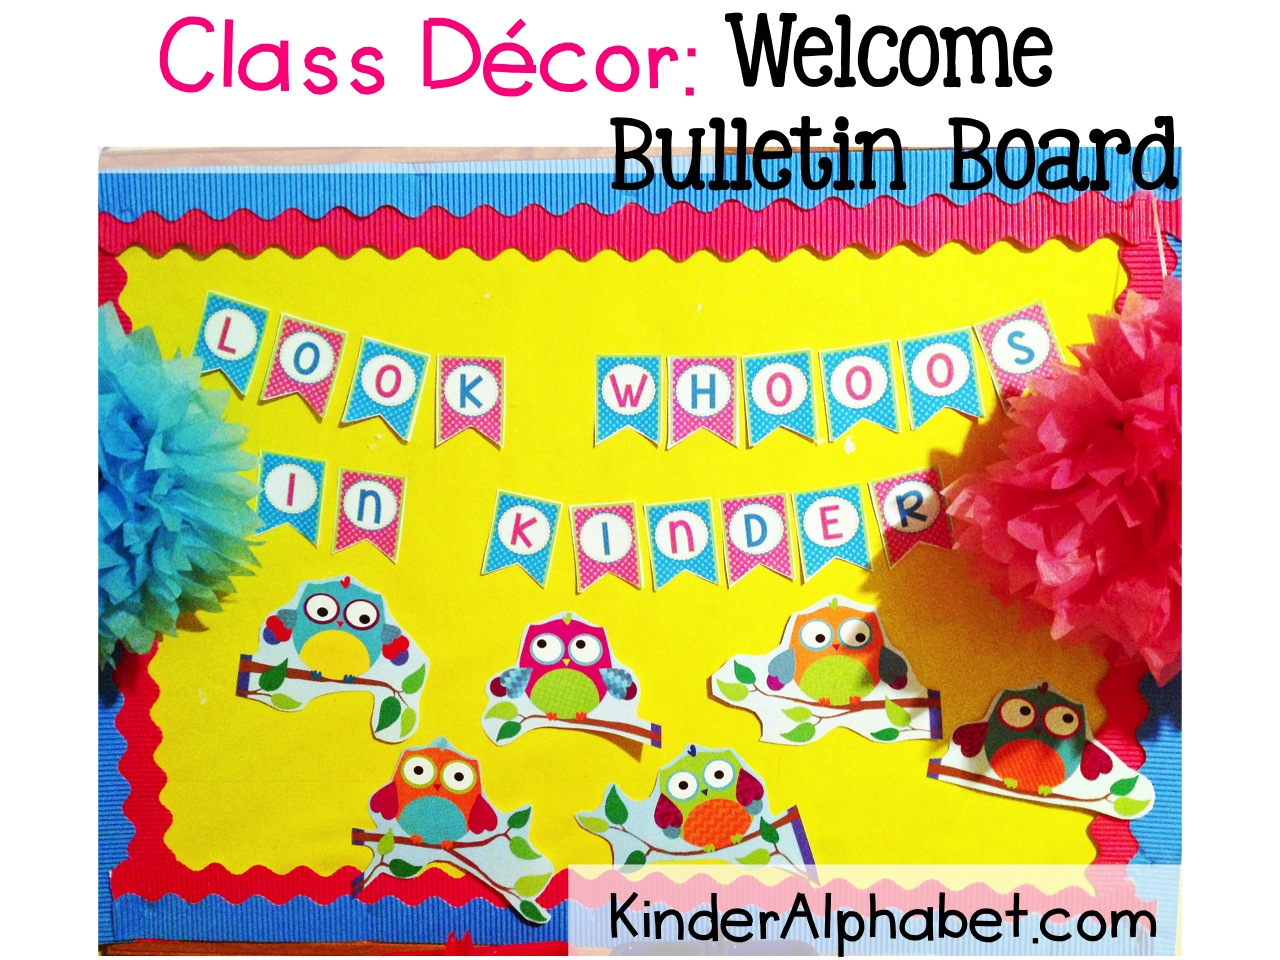 Classroom Decor Linky Party